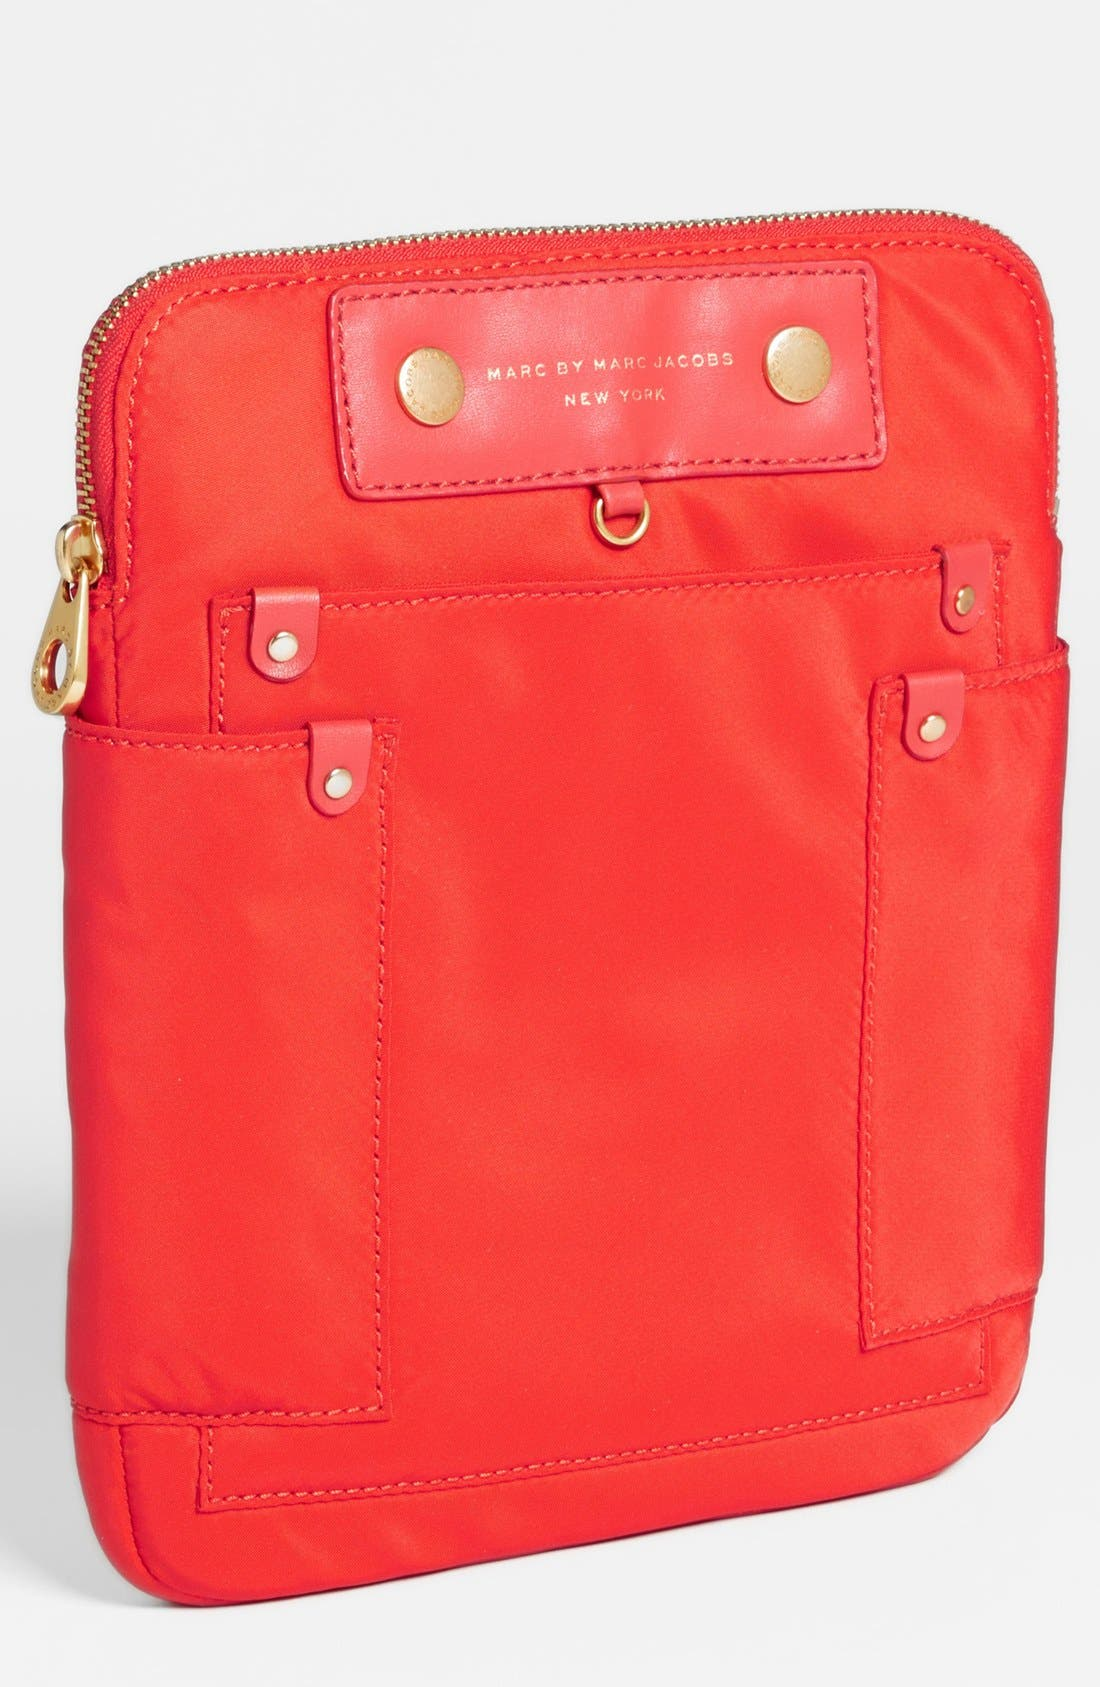 Main Image - MARC BY MARC JACOBS 'Preppy Nylon' Tablet Case